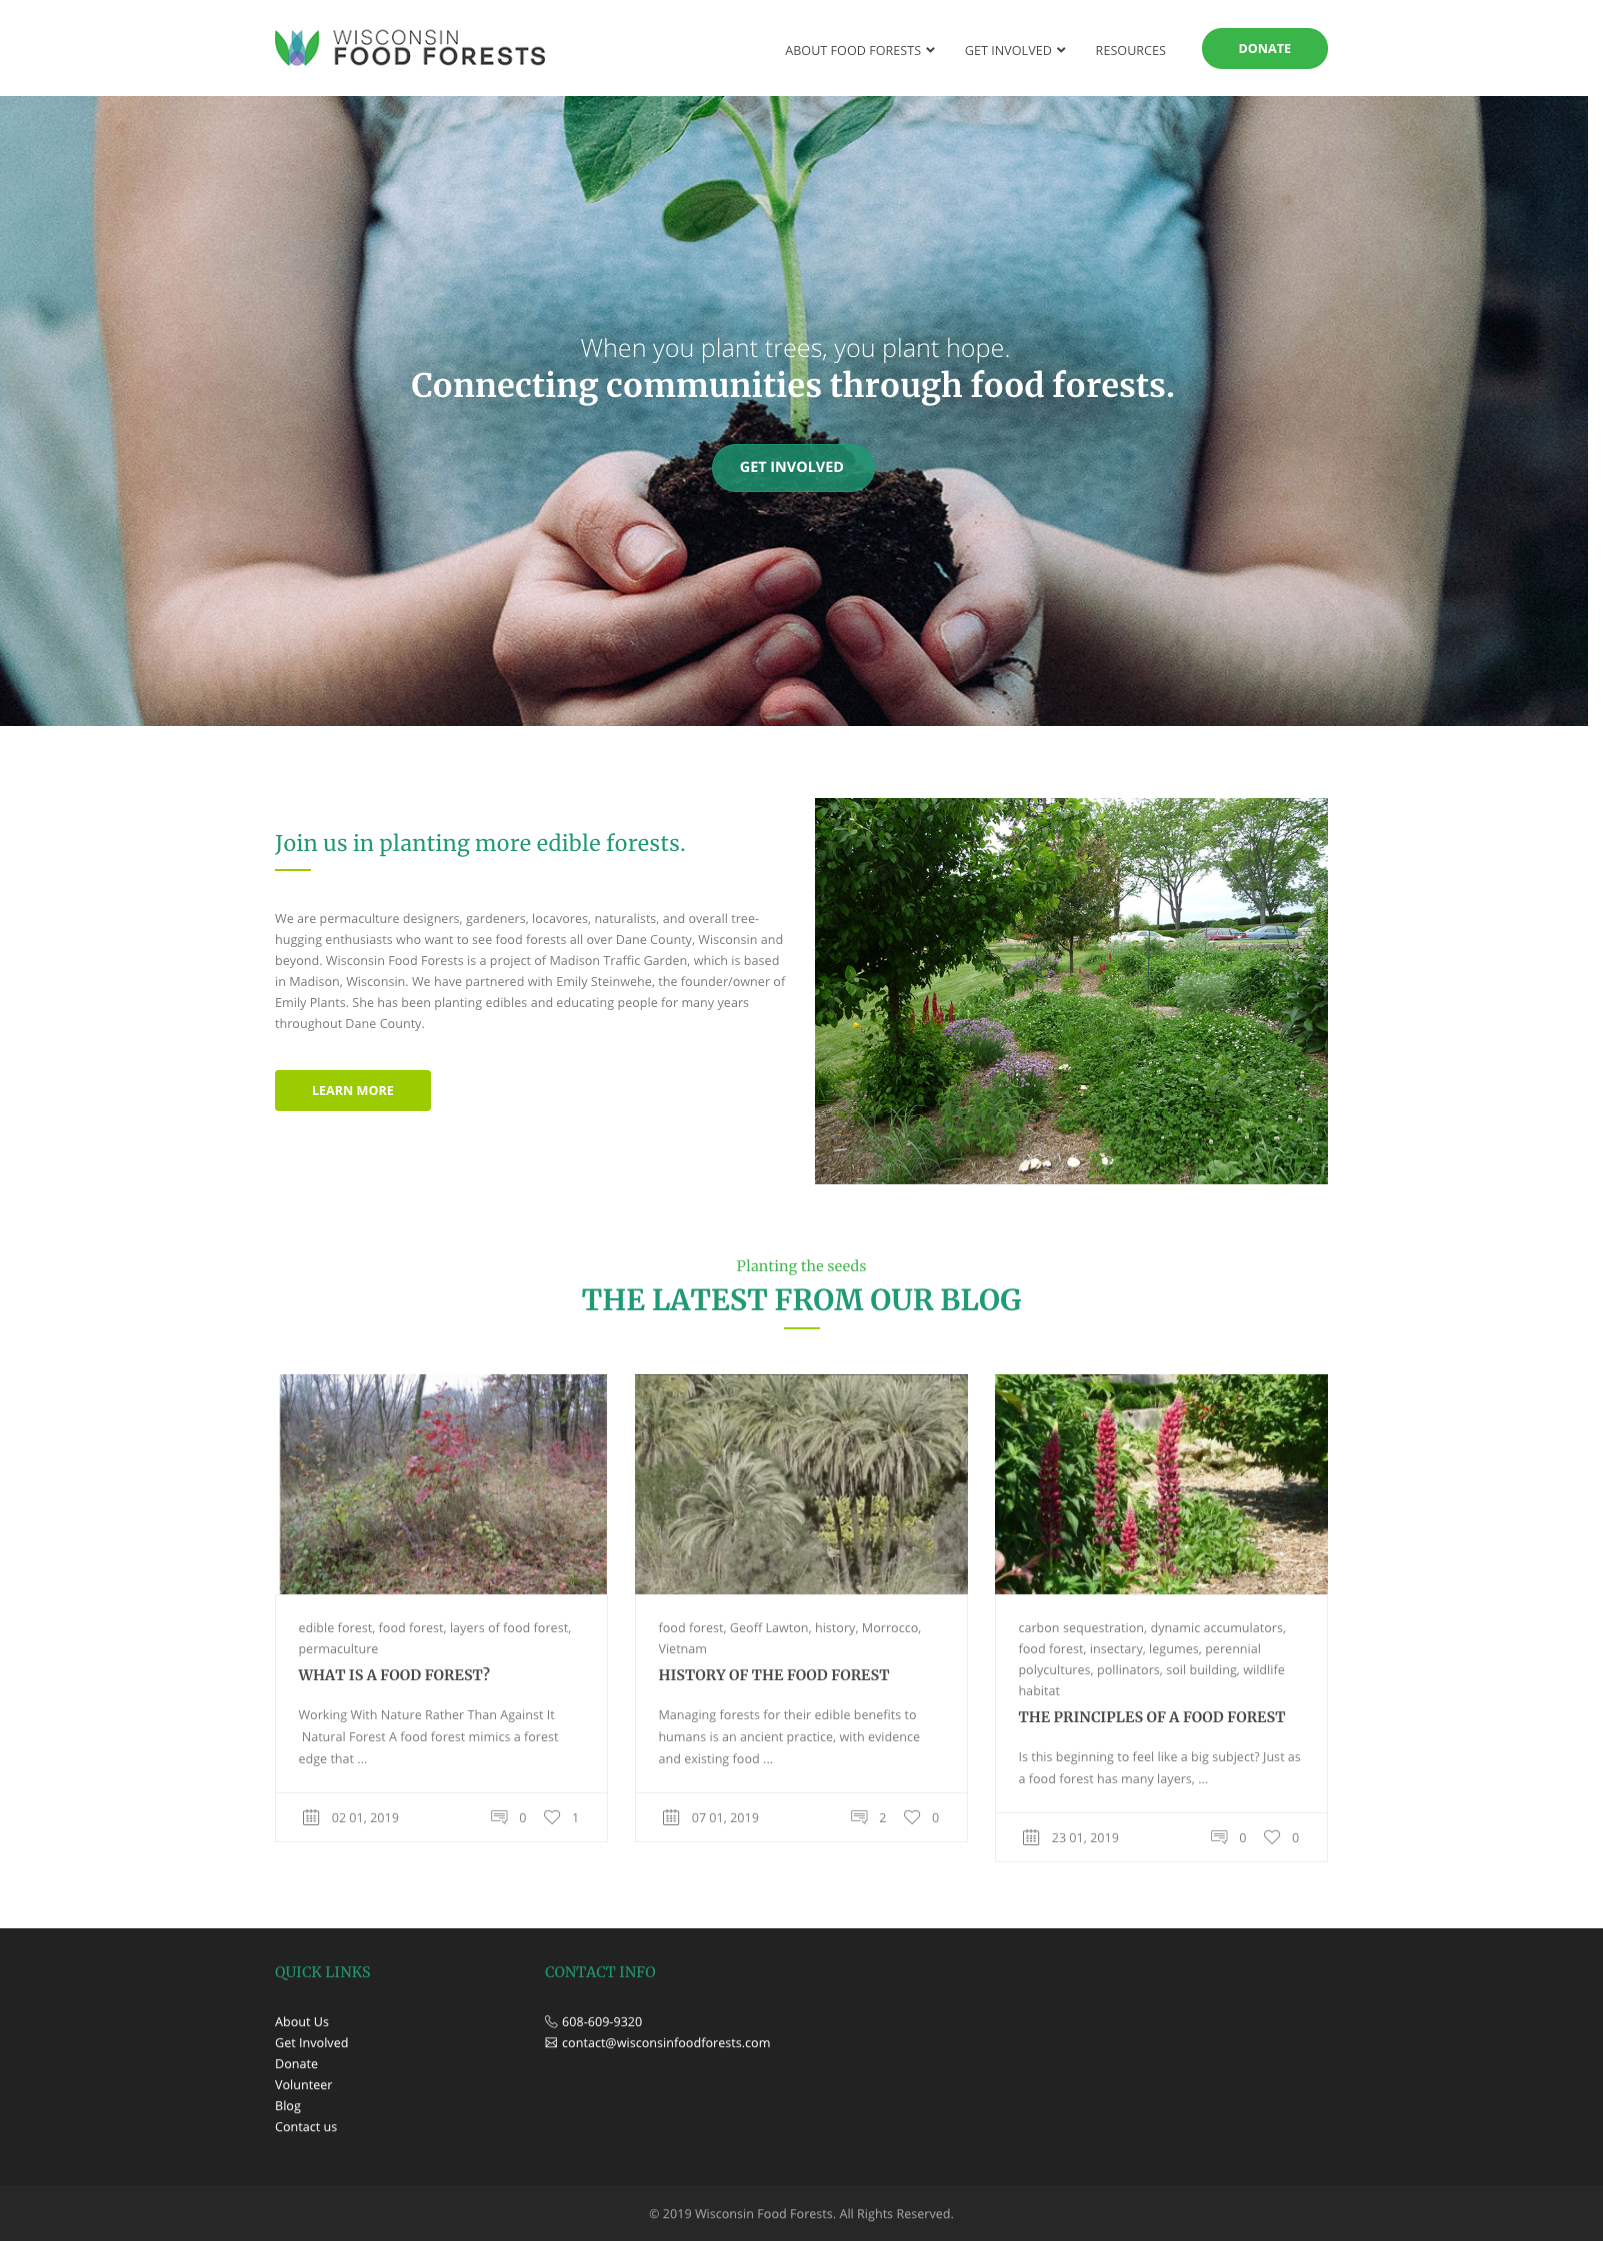 Wisconsin food forests home page